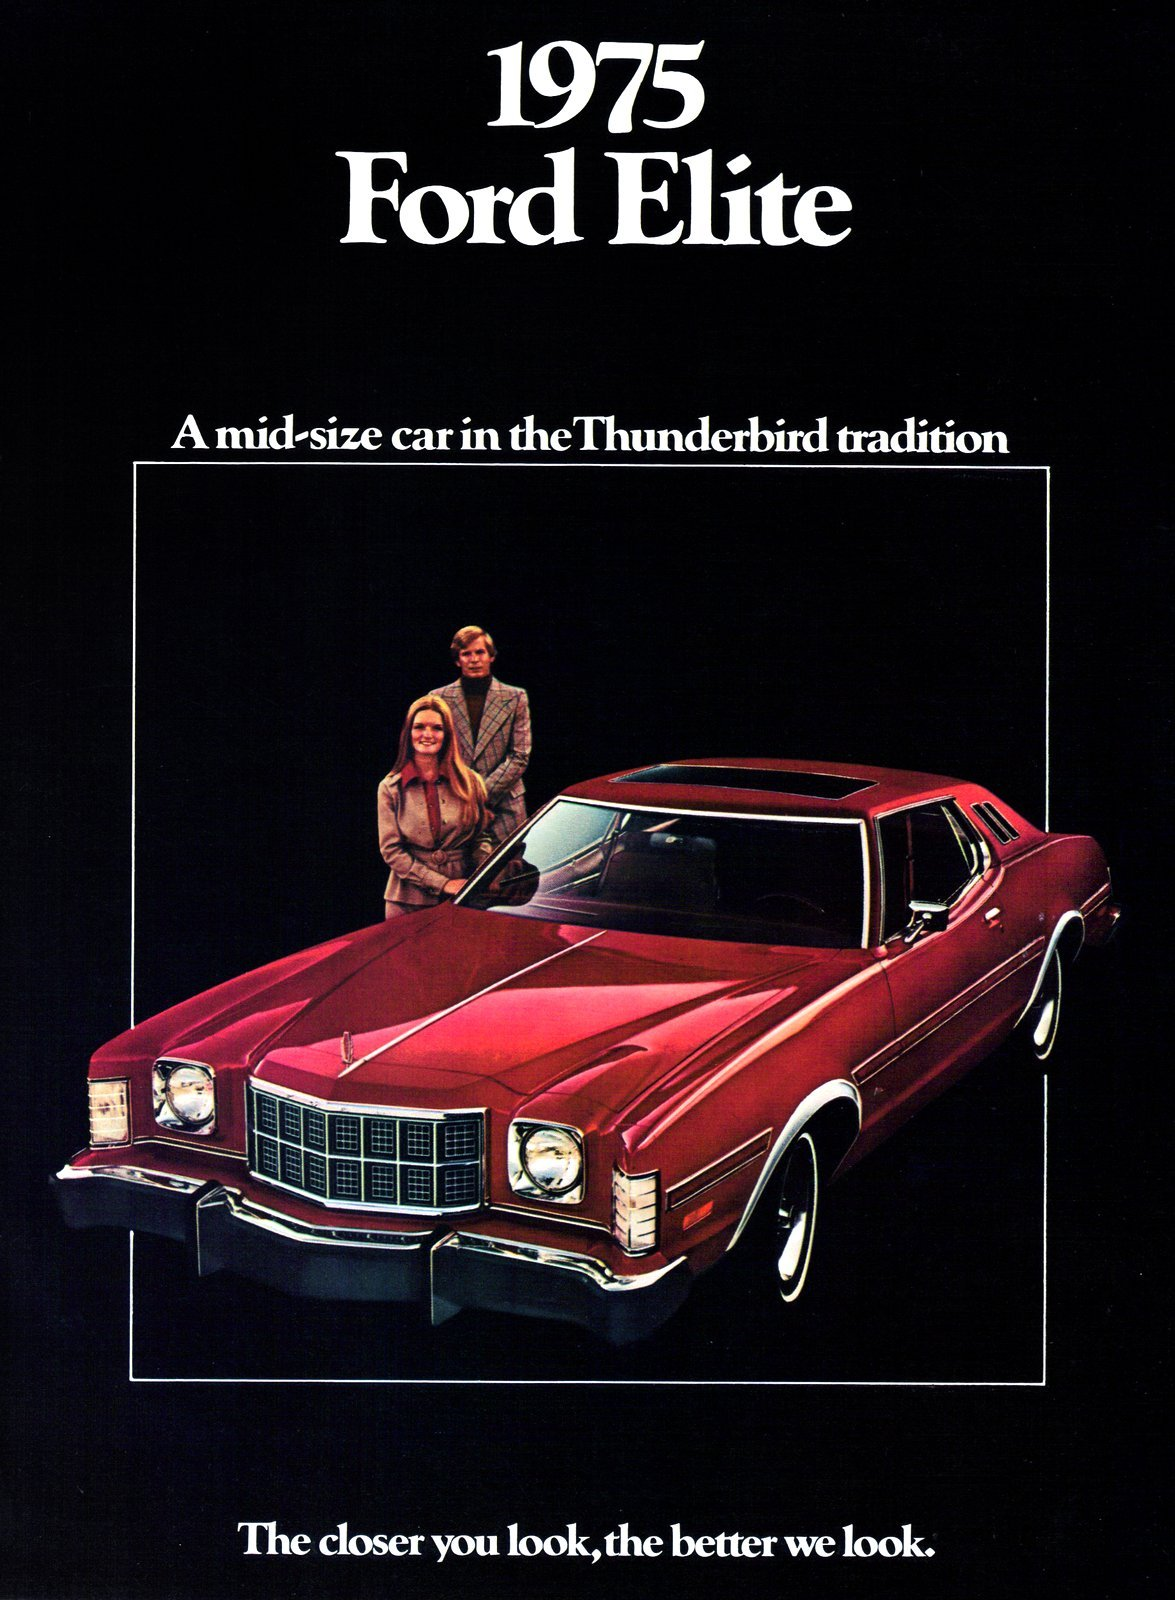 Classic 1975 Ford Elite - red